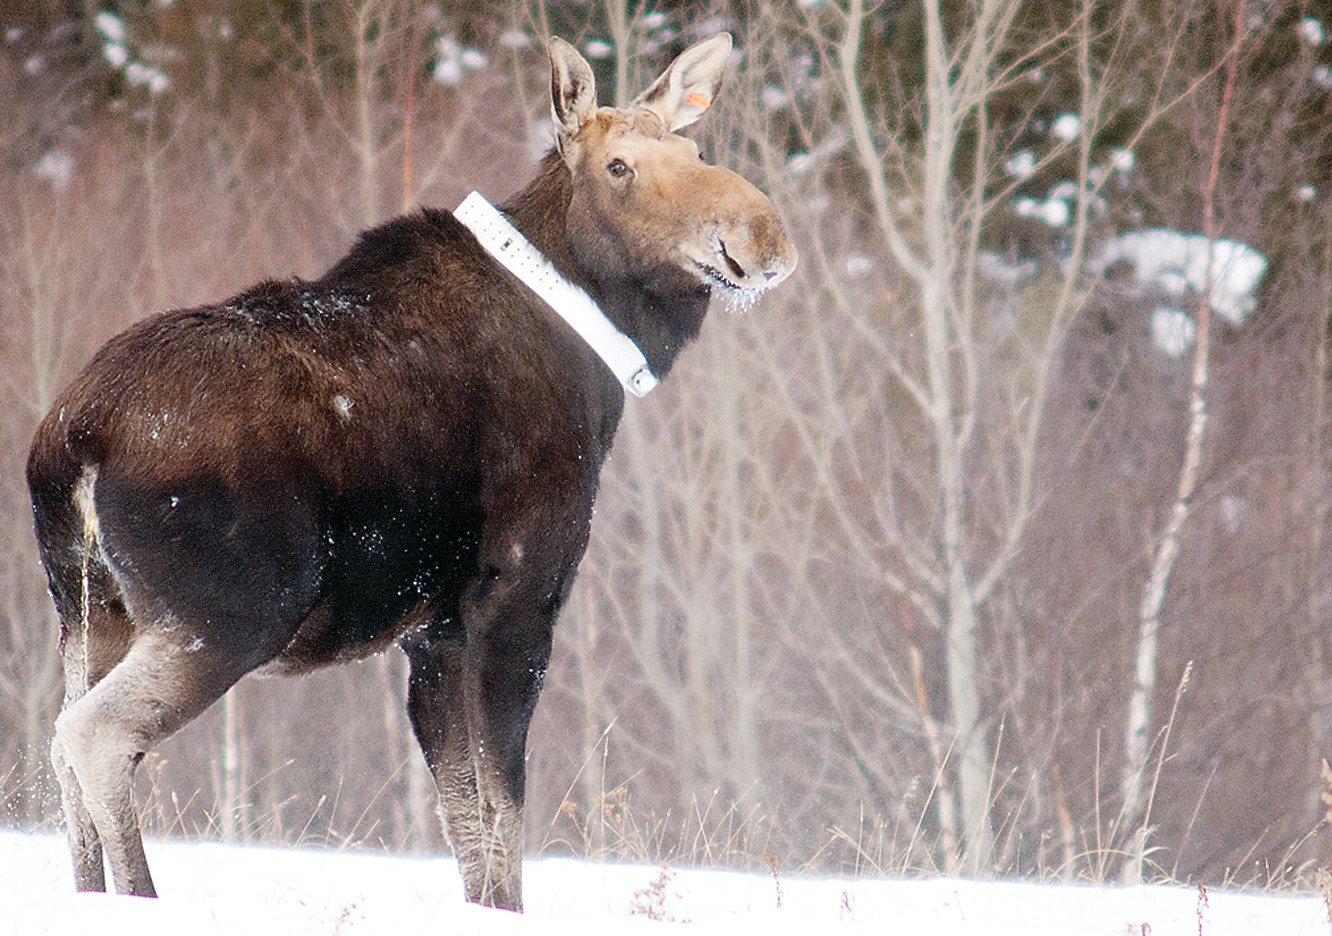 Moose research is suggesting that health issues related to deer and excess wolf predation are the factors currently hampering recovery of the region's moose population.